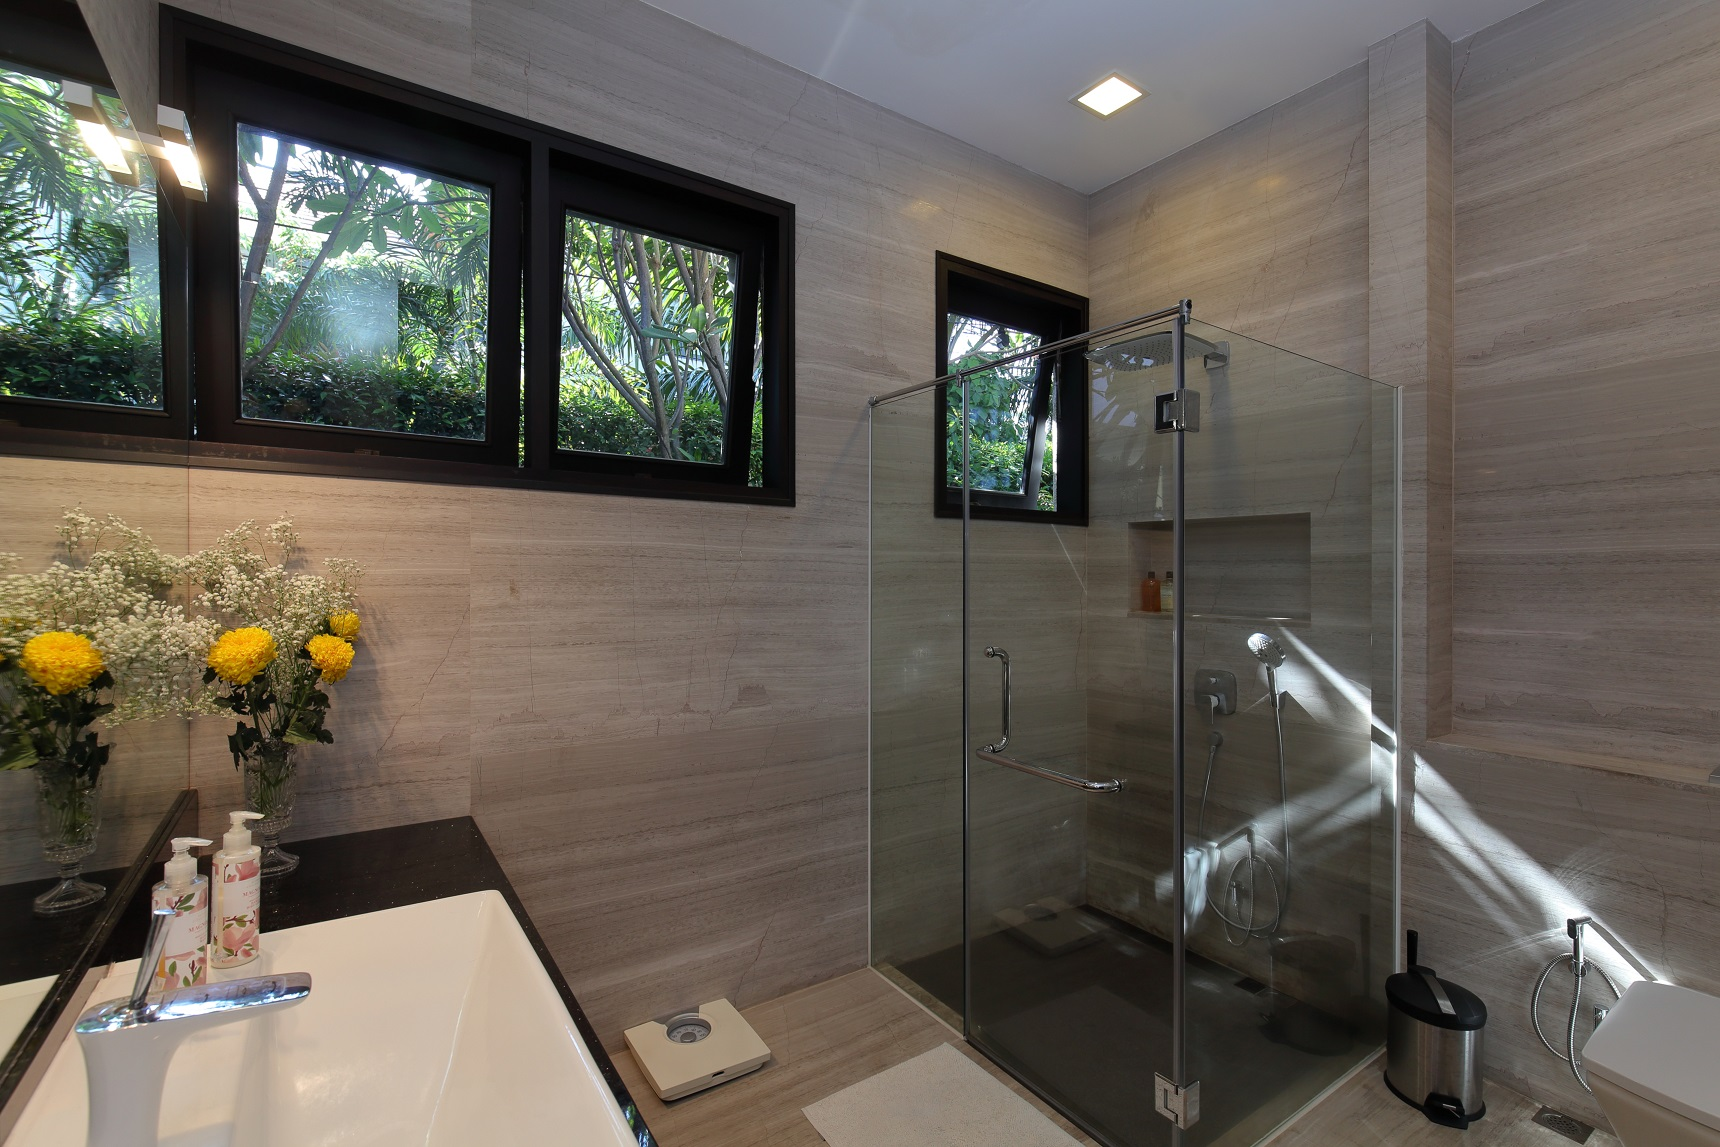 En suite master bathroom and all the other bathrooms in the house were newly refurbished by the owner (Photo: Samuel Isaac Chua/EdgeProp Singapore)